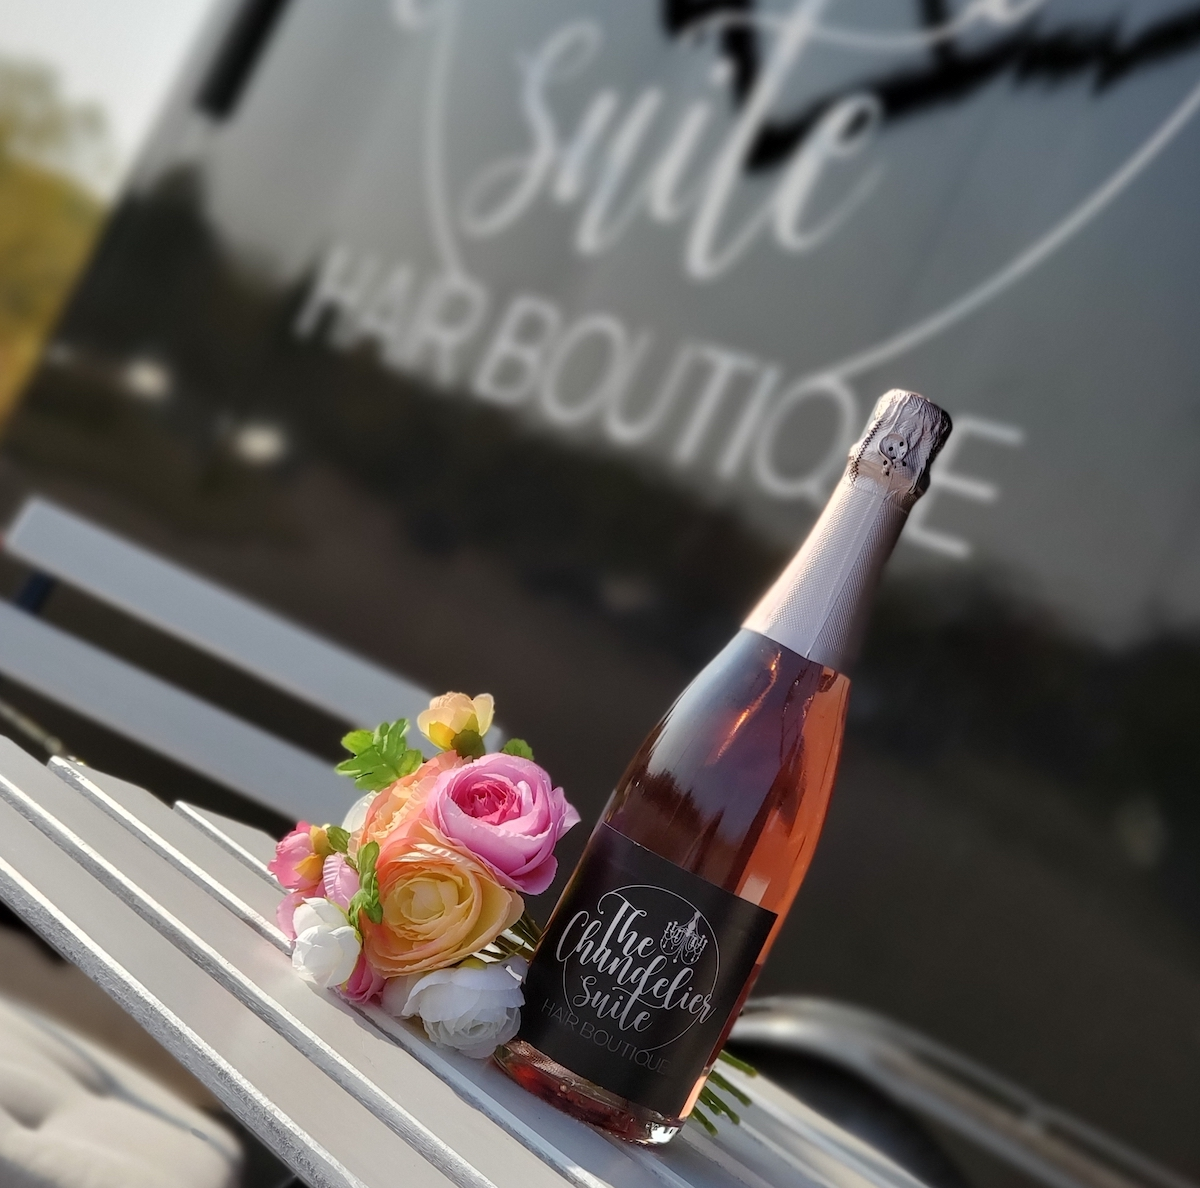 The Chandelier Suite boutique Rose wine with flowers